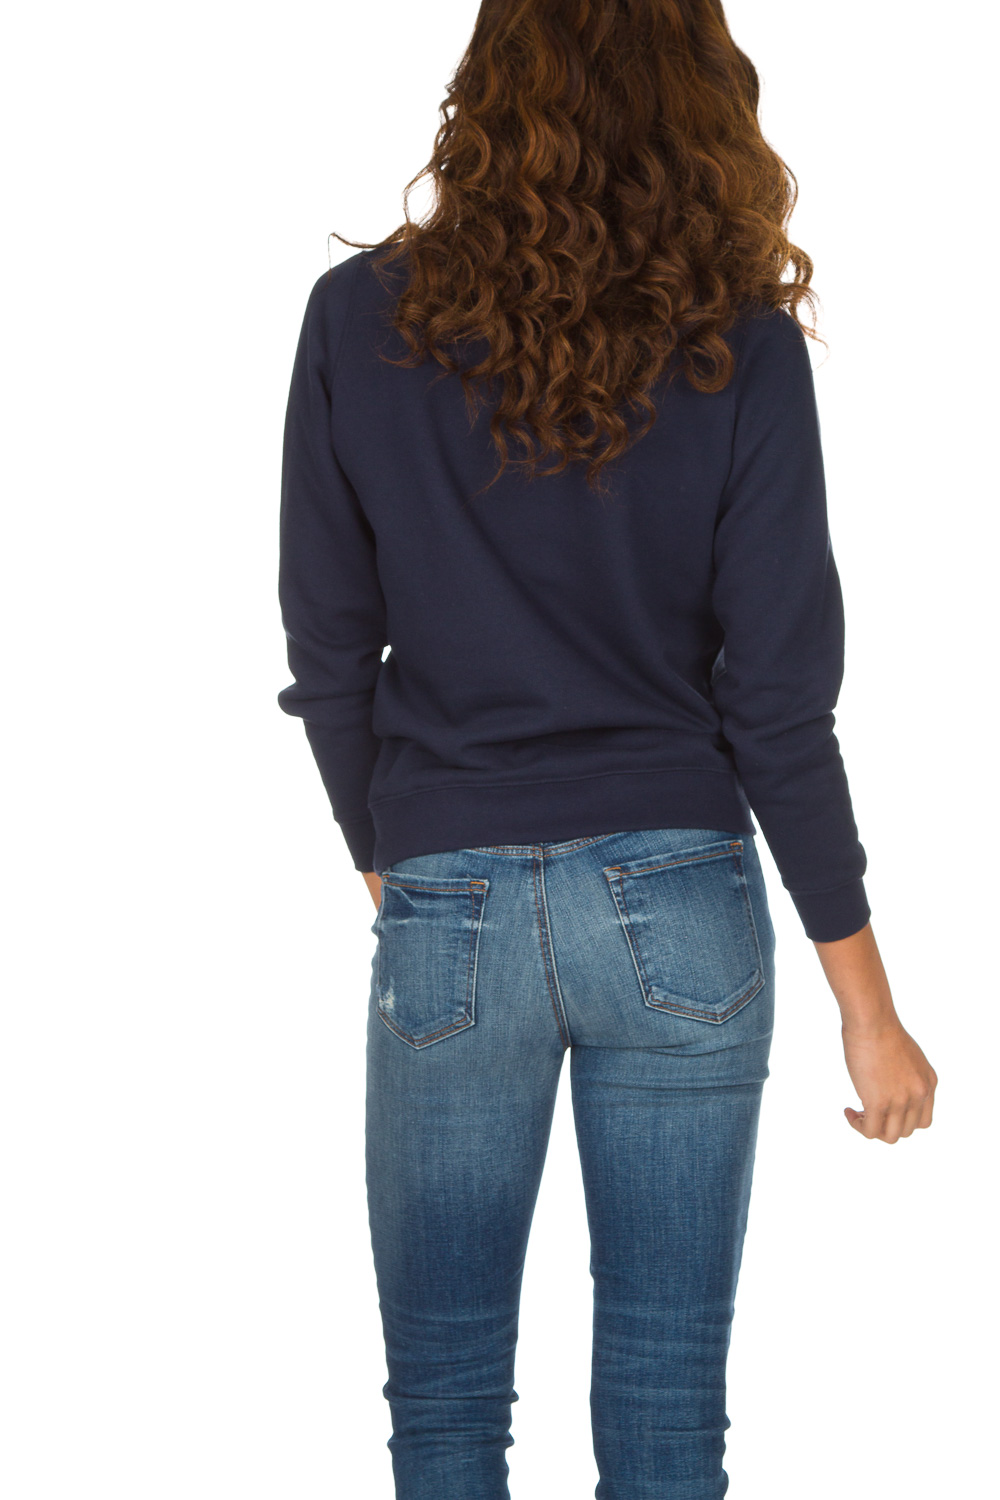 Luxe sweater Après Ski | donkerblauw | French Disorder